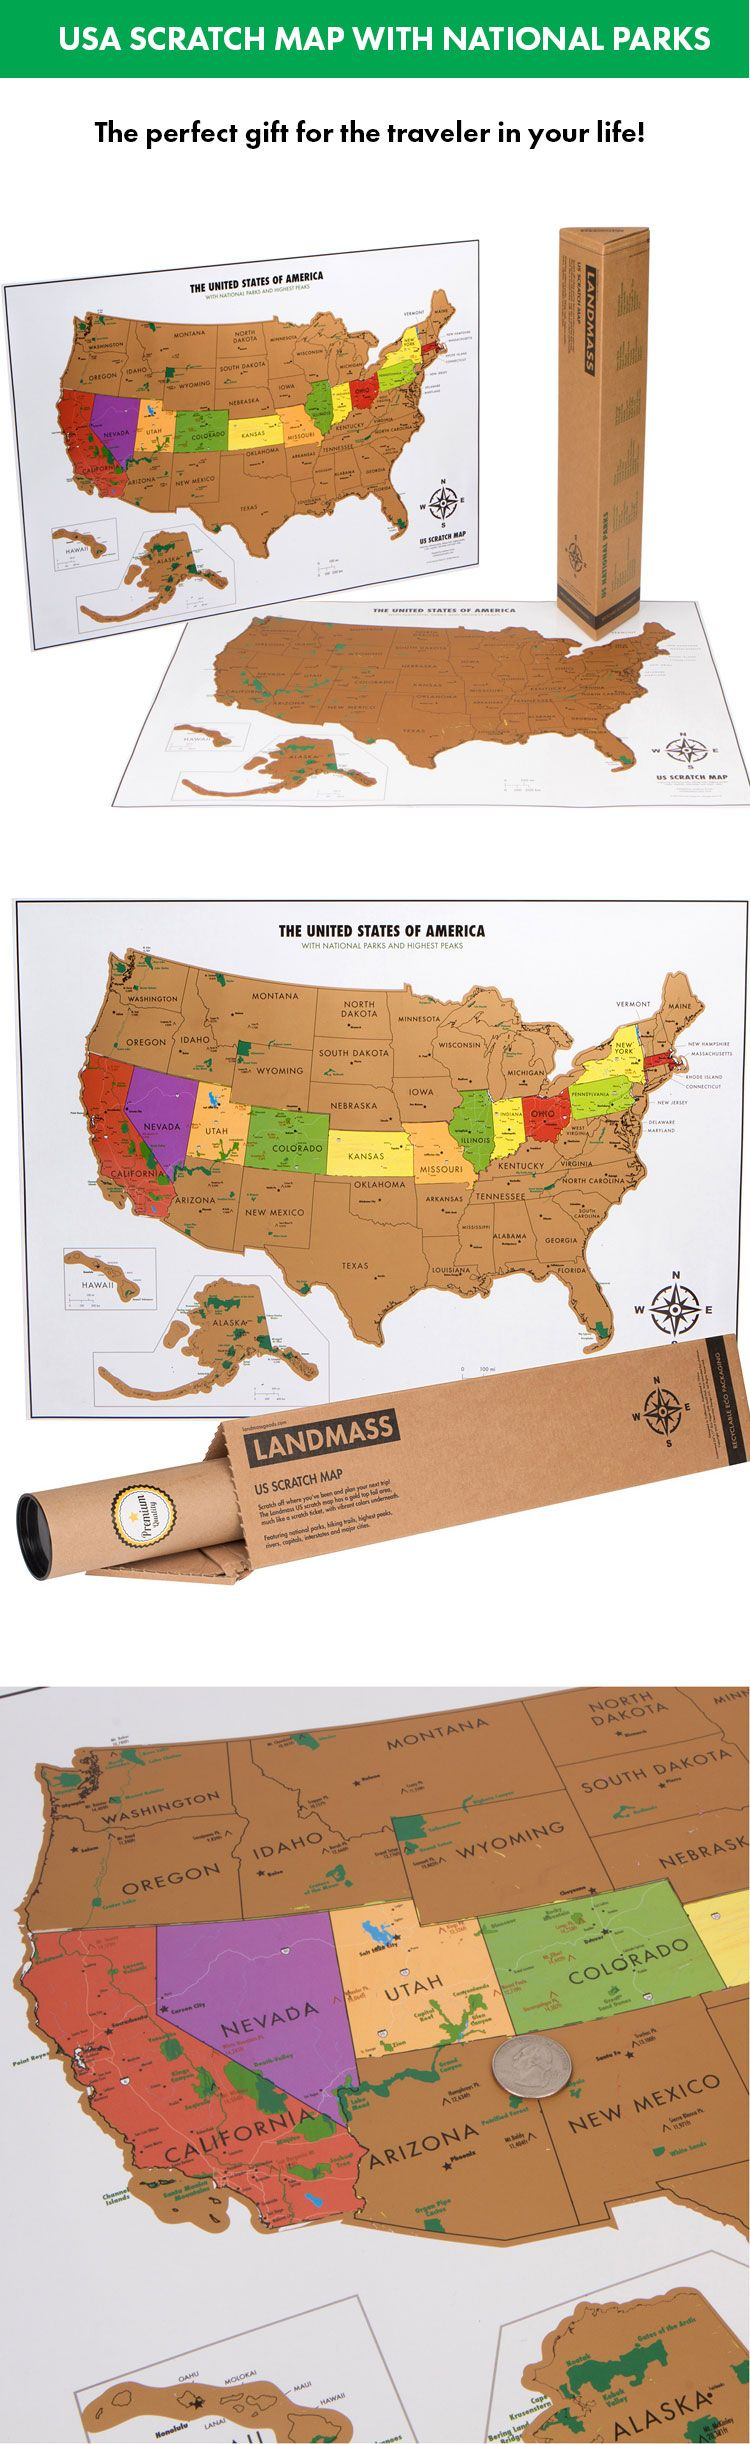 Scratch off USA Map with National Parks - Travel Tracker Map ...